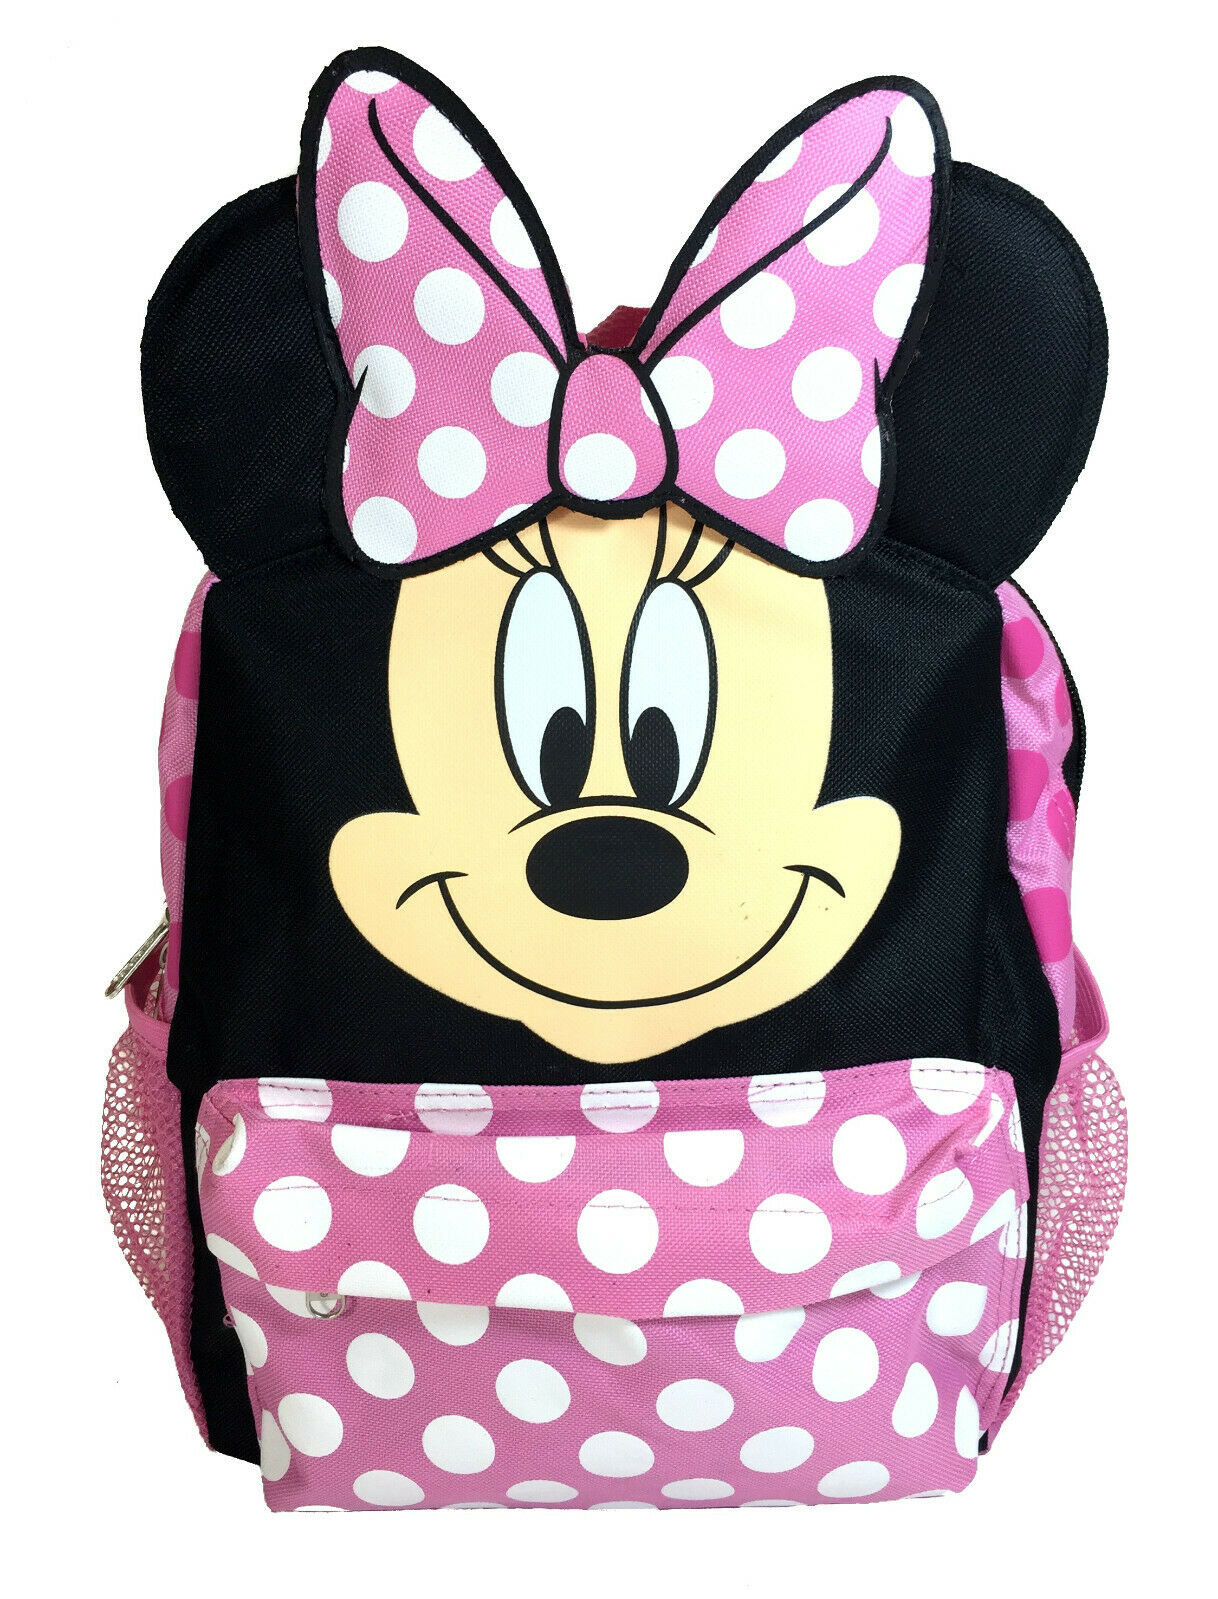 """Disney Minnie Mouse Allover Print 16/"""" Girls Large School Backpack-Pink-0308"""